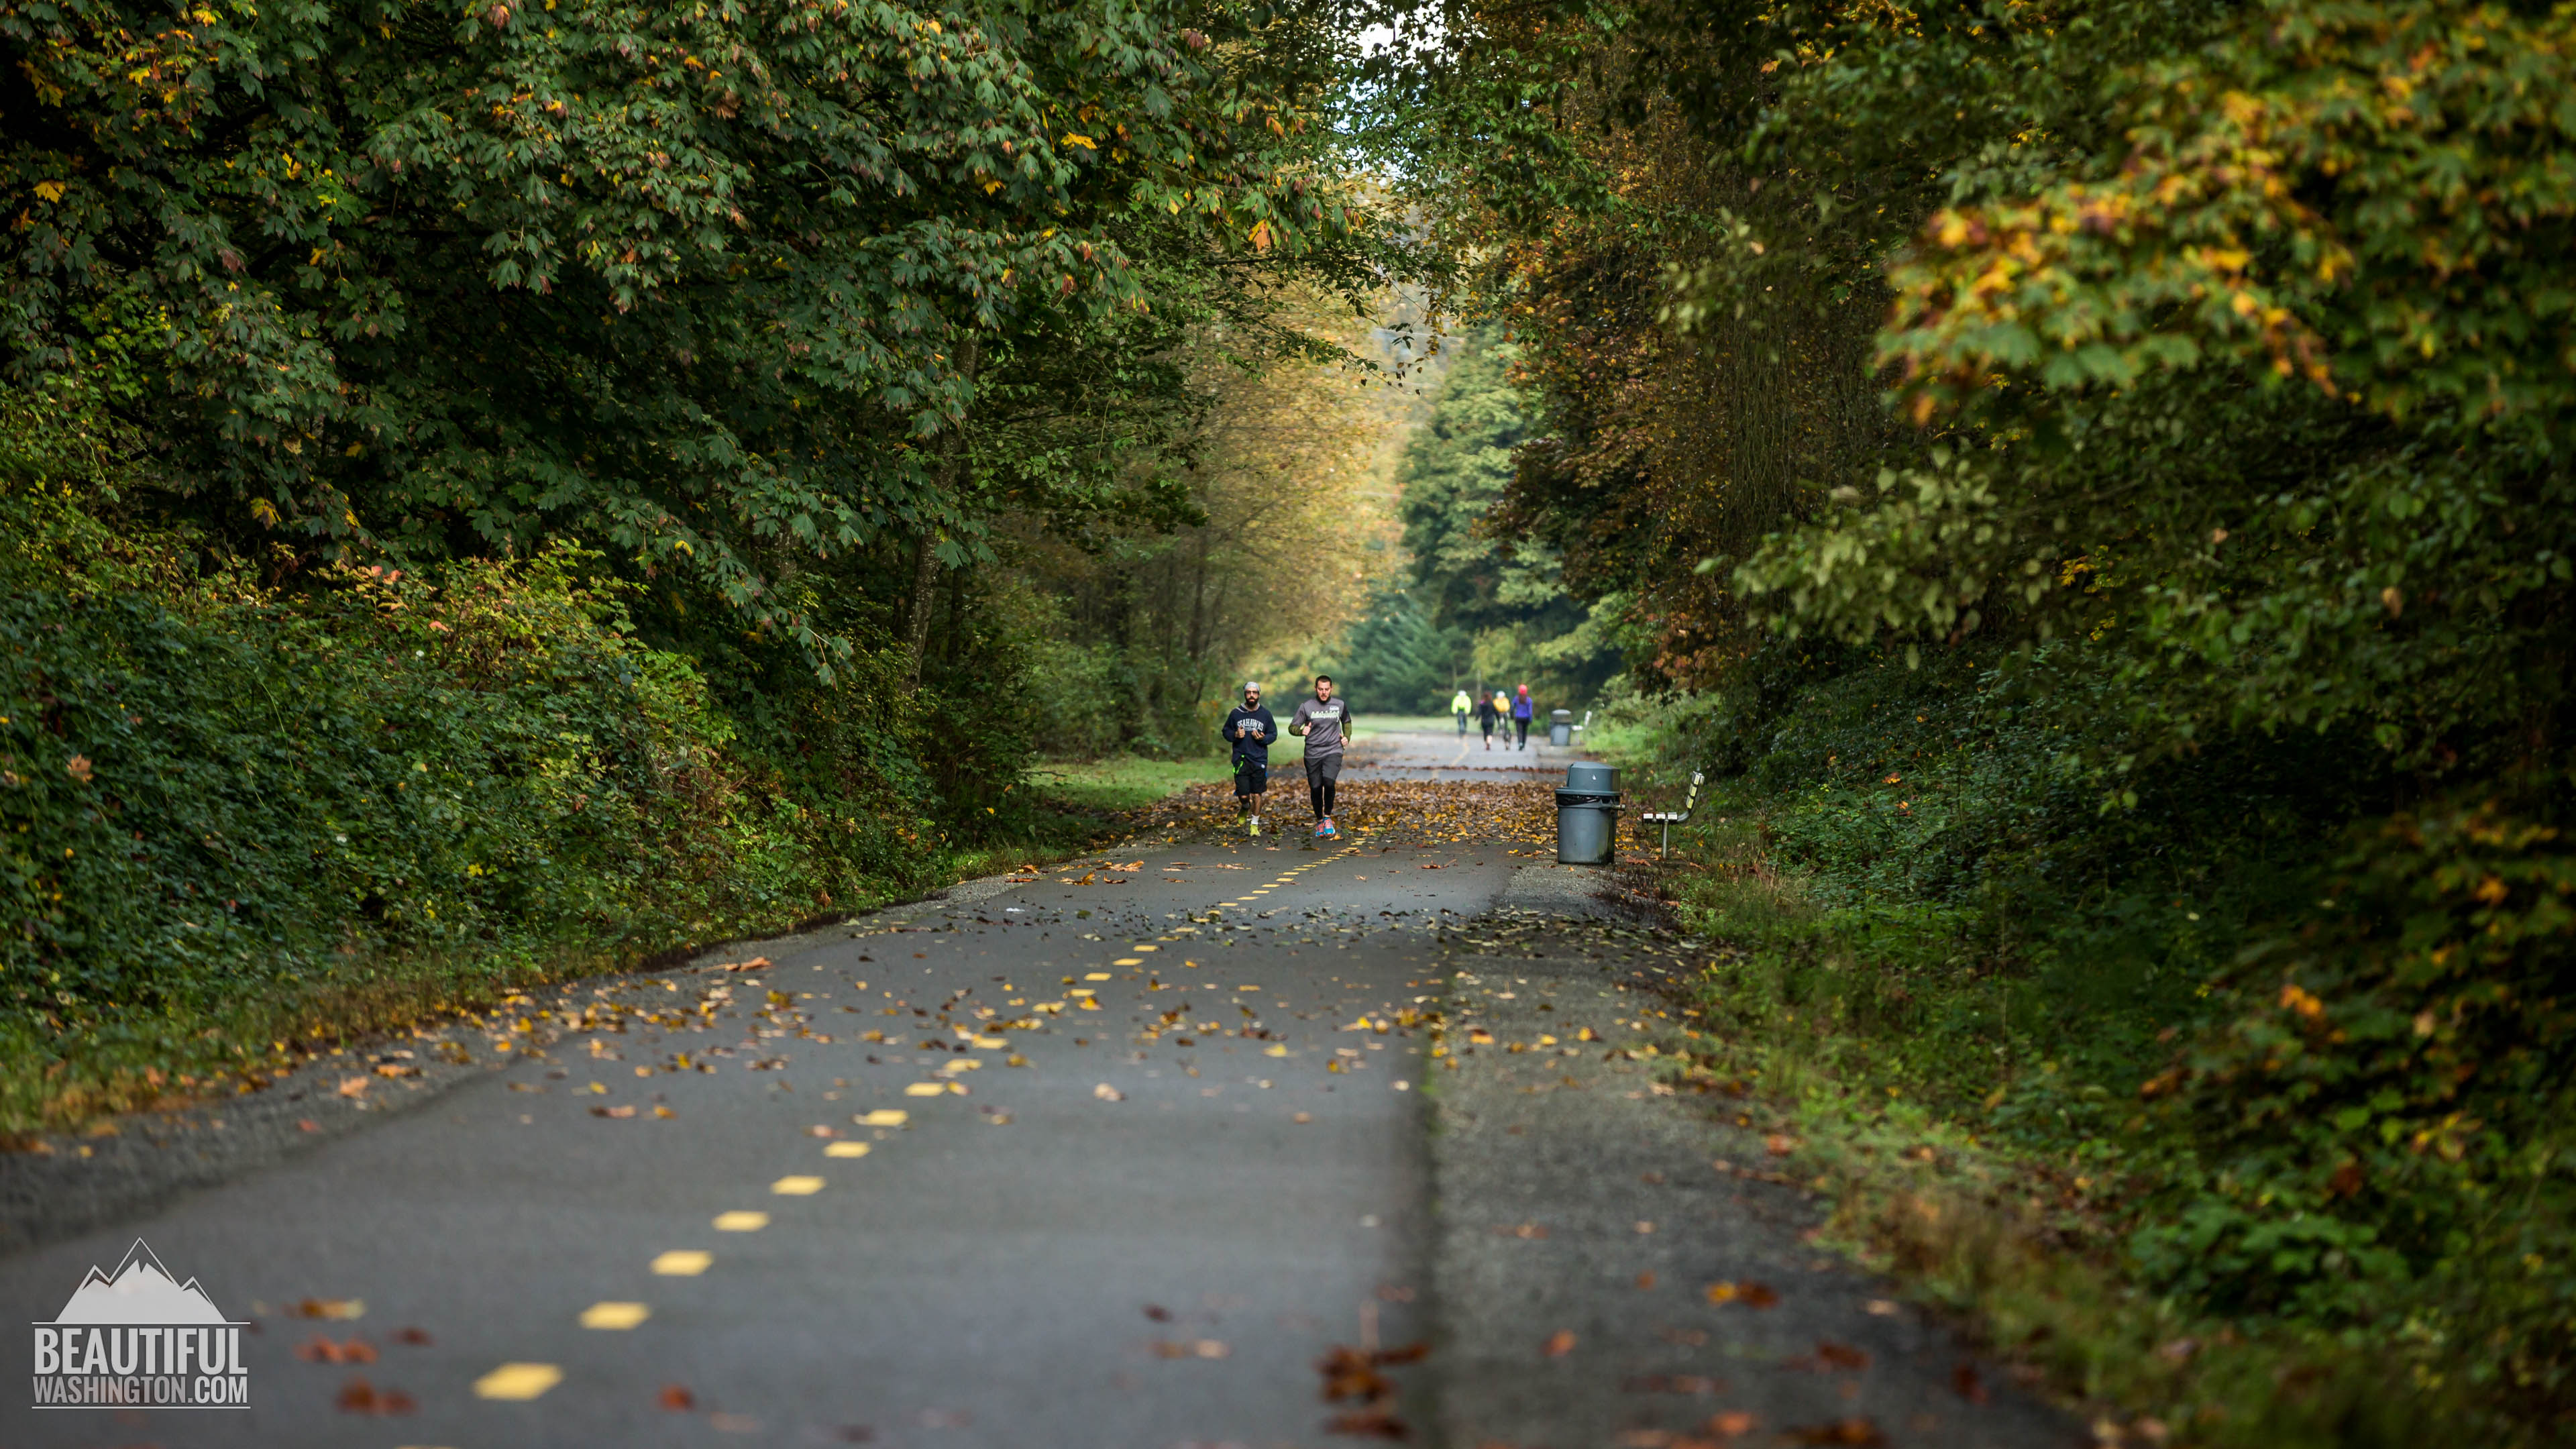 Photo from King County, Renton, Maplewood Roadside Park